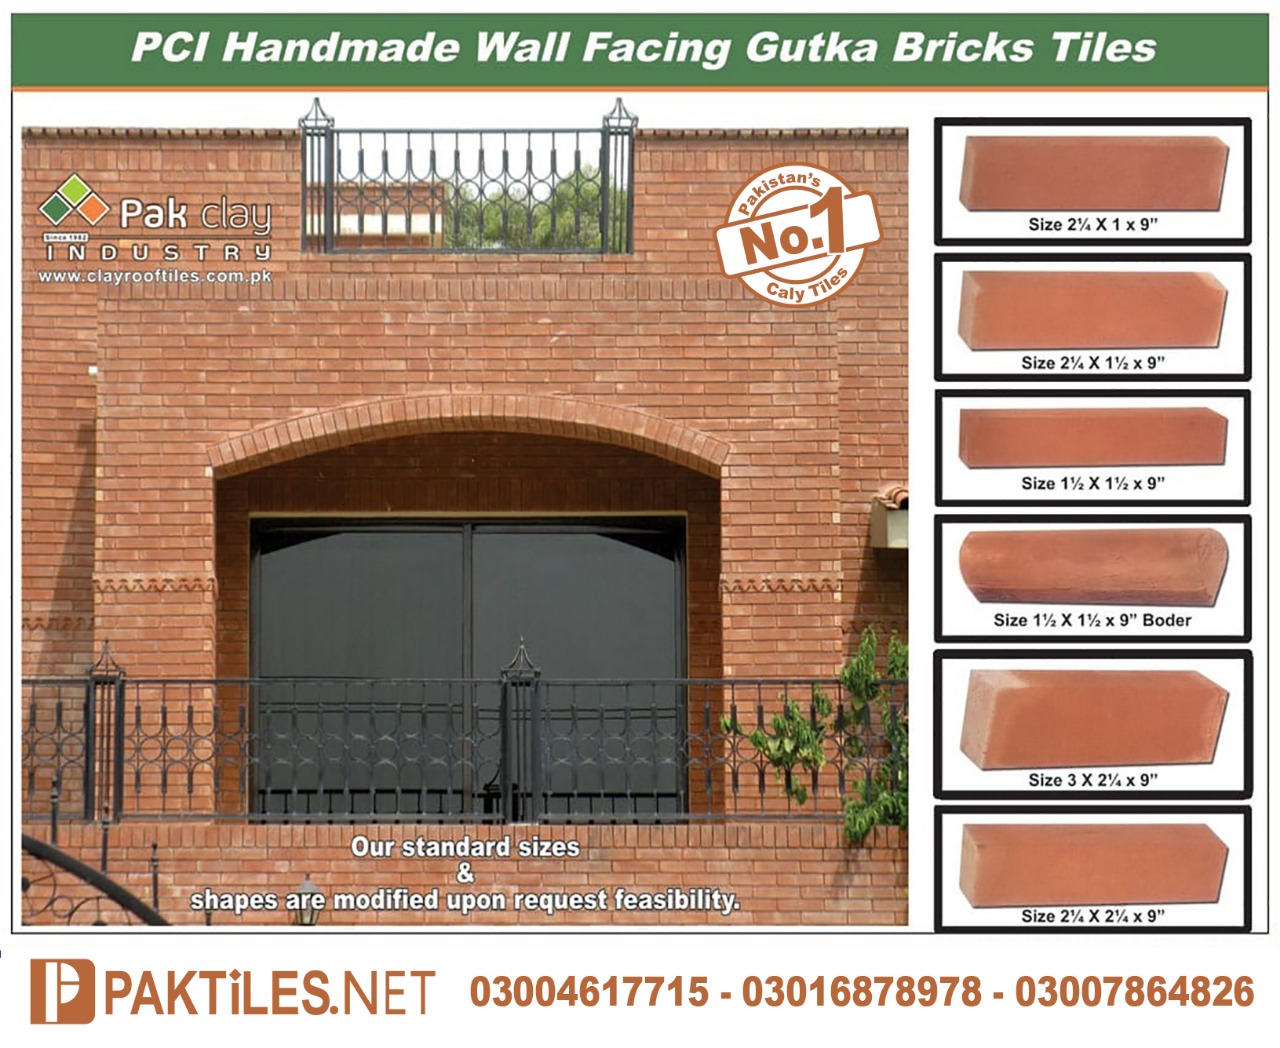 Gutka Brick Size Red Gutka Wall Brick Tiles in Pakistan